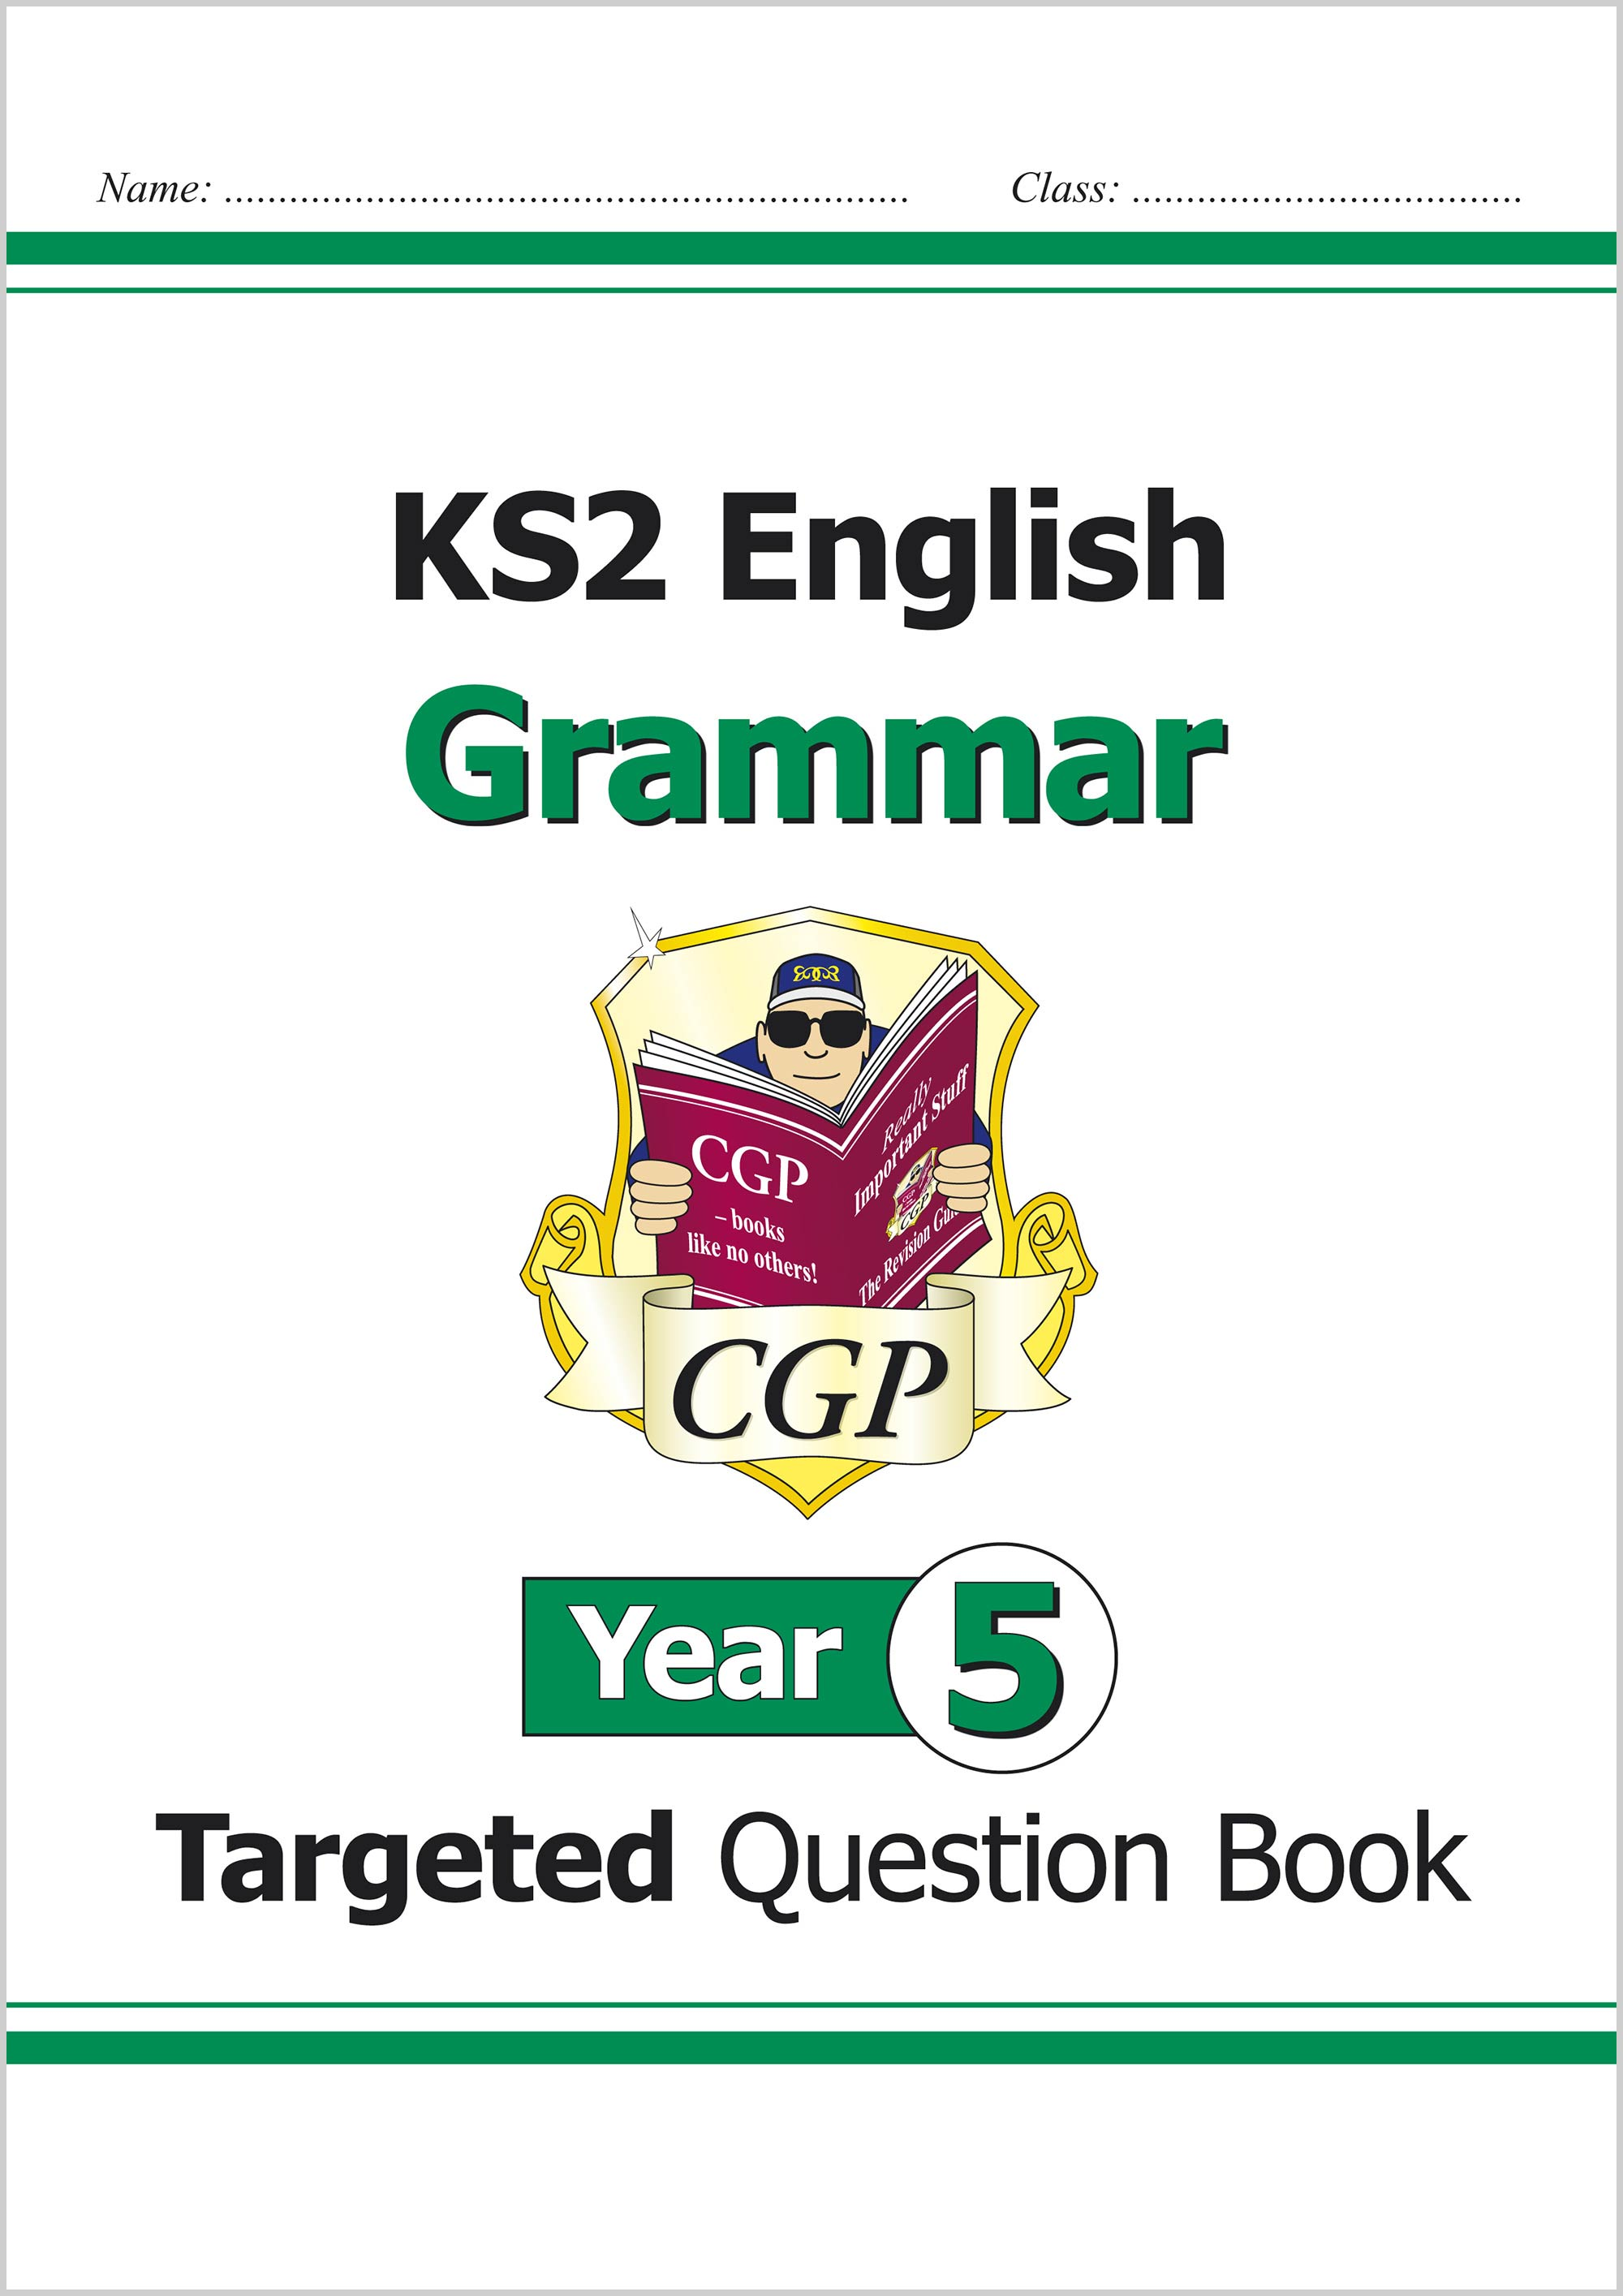 E5GW21 - KS2 English Targeted Question Book: Grammar - Year 5